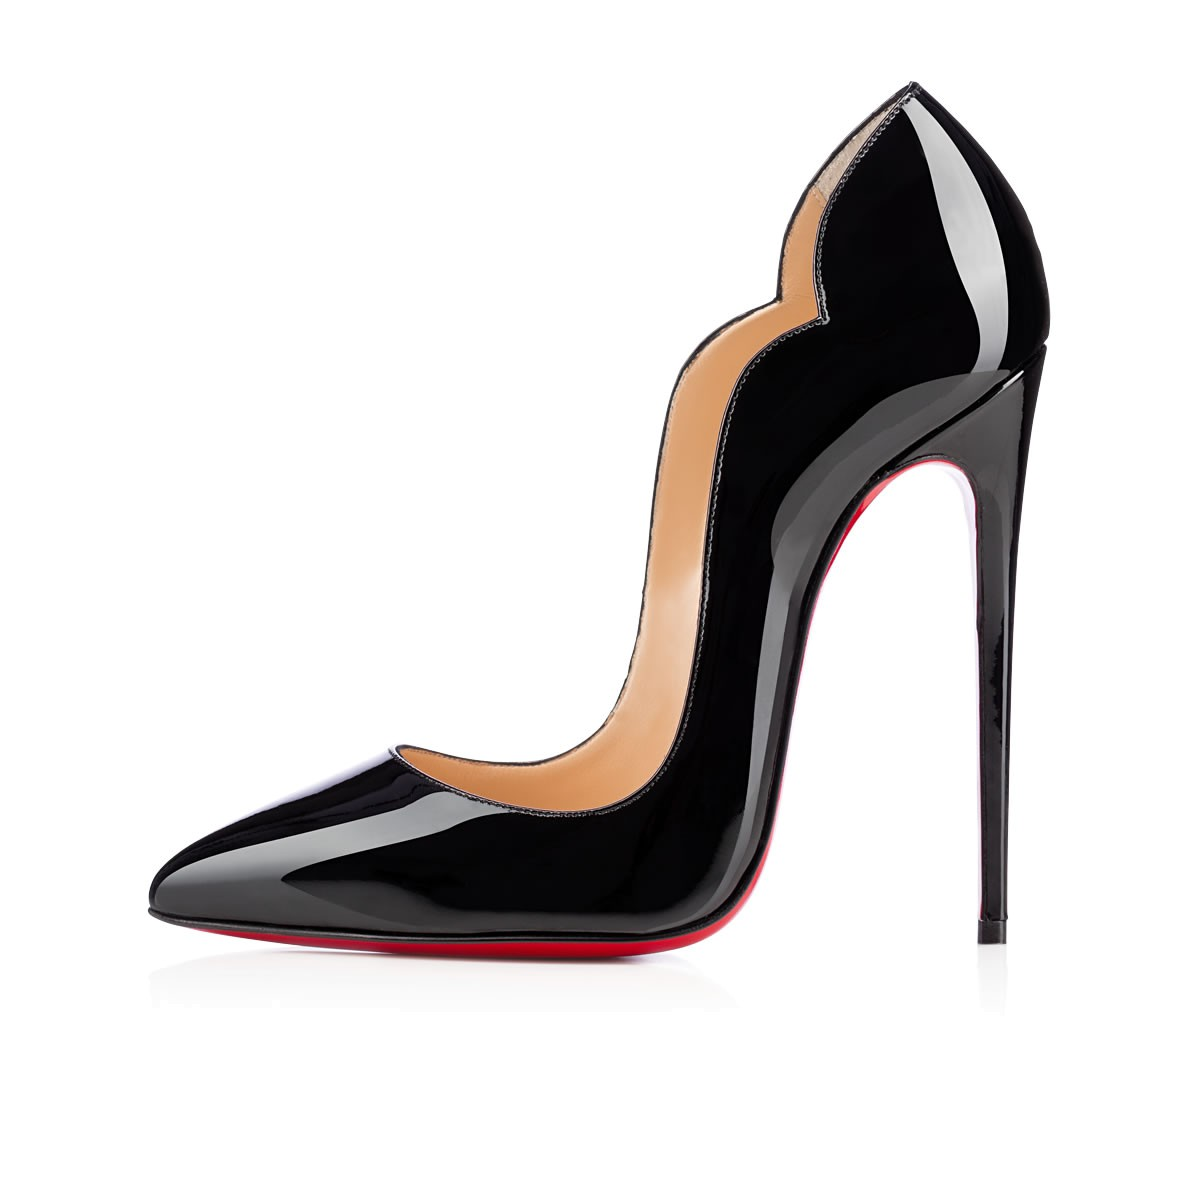 be7683d699a Christian Louboutin Hot Chick 130 Black Patent Leather - Women Shoes ...